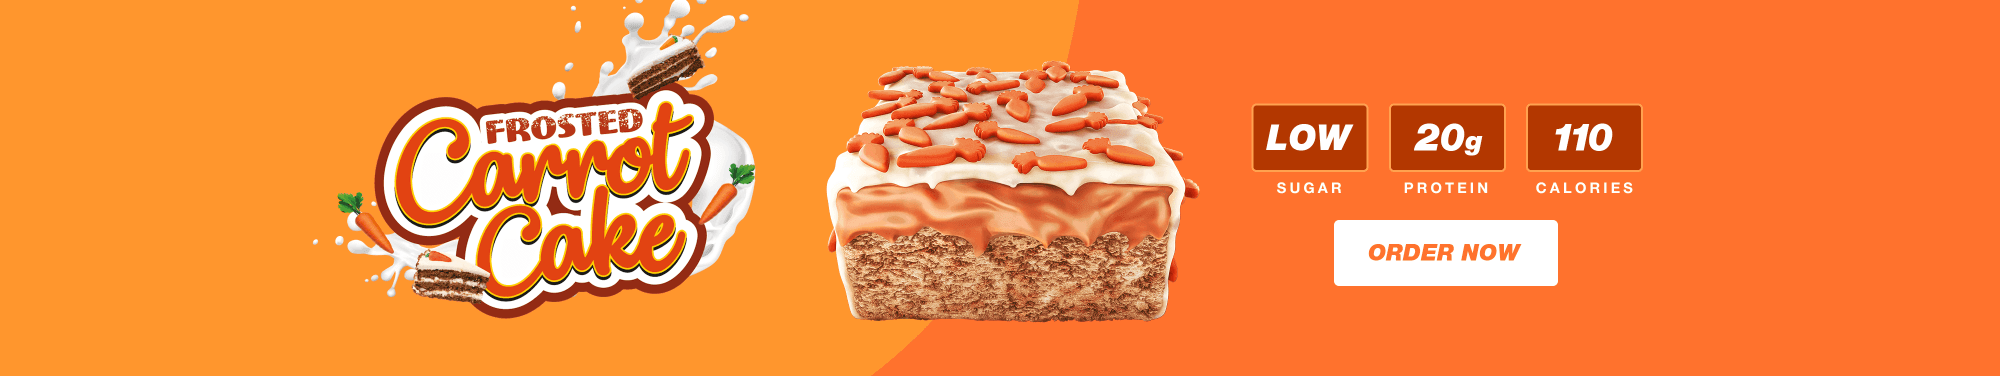 Battle Bites Frosted Carrot Cake